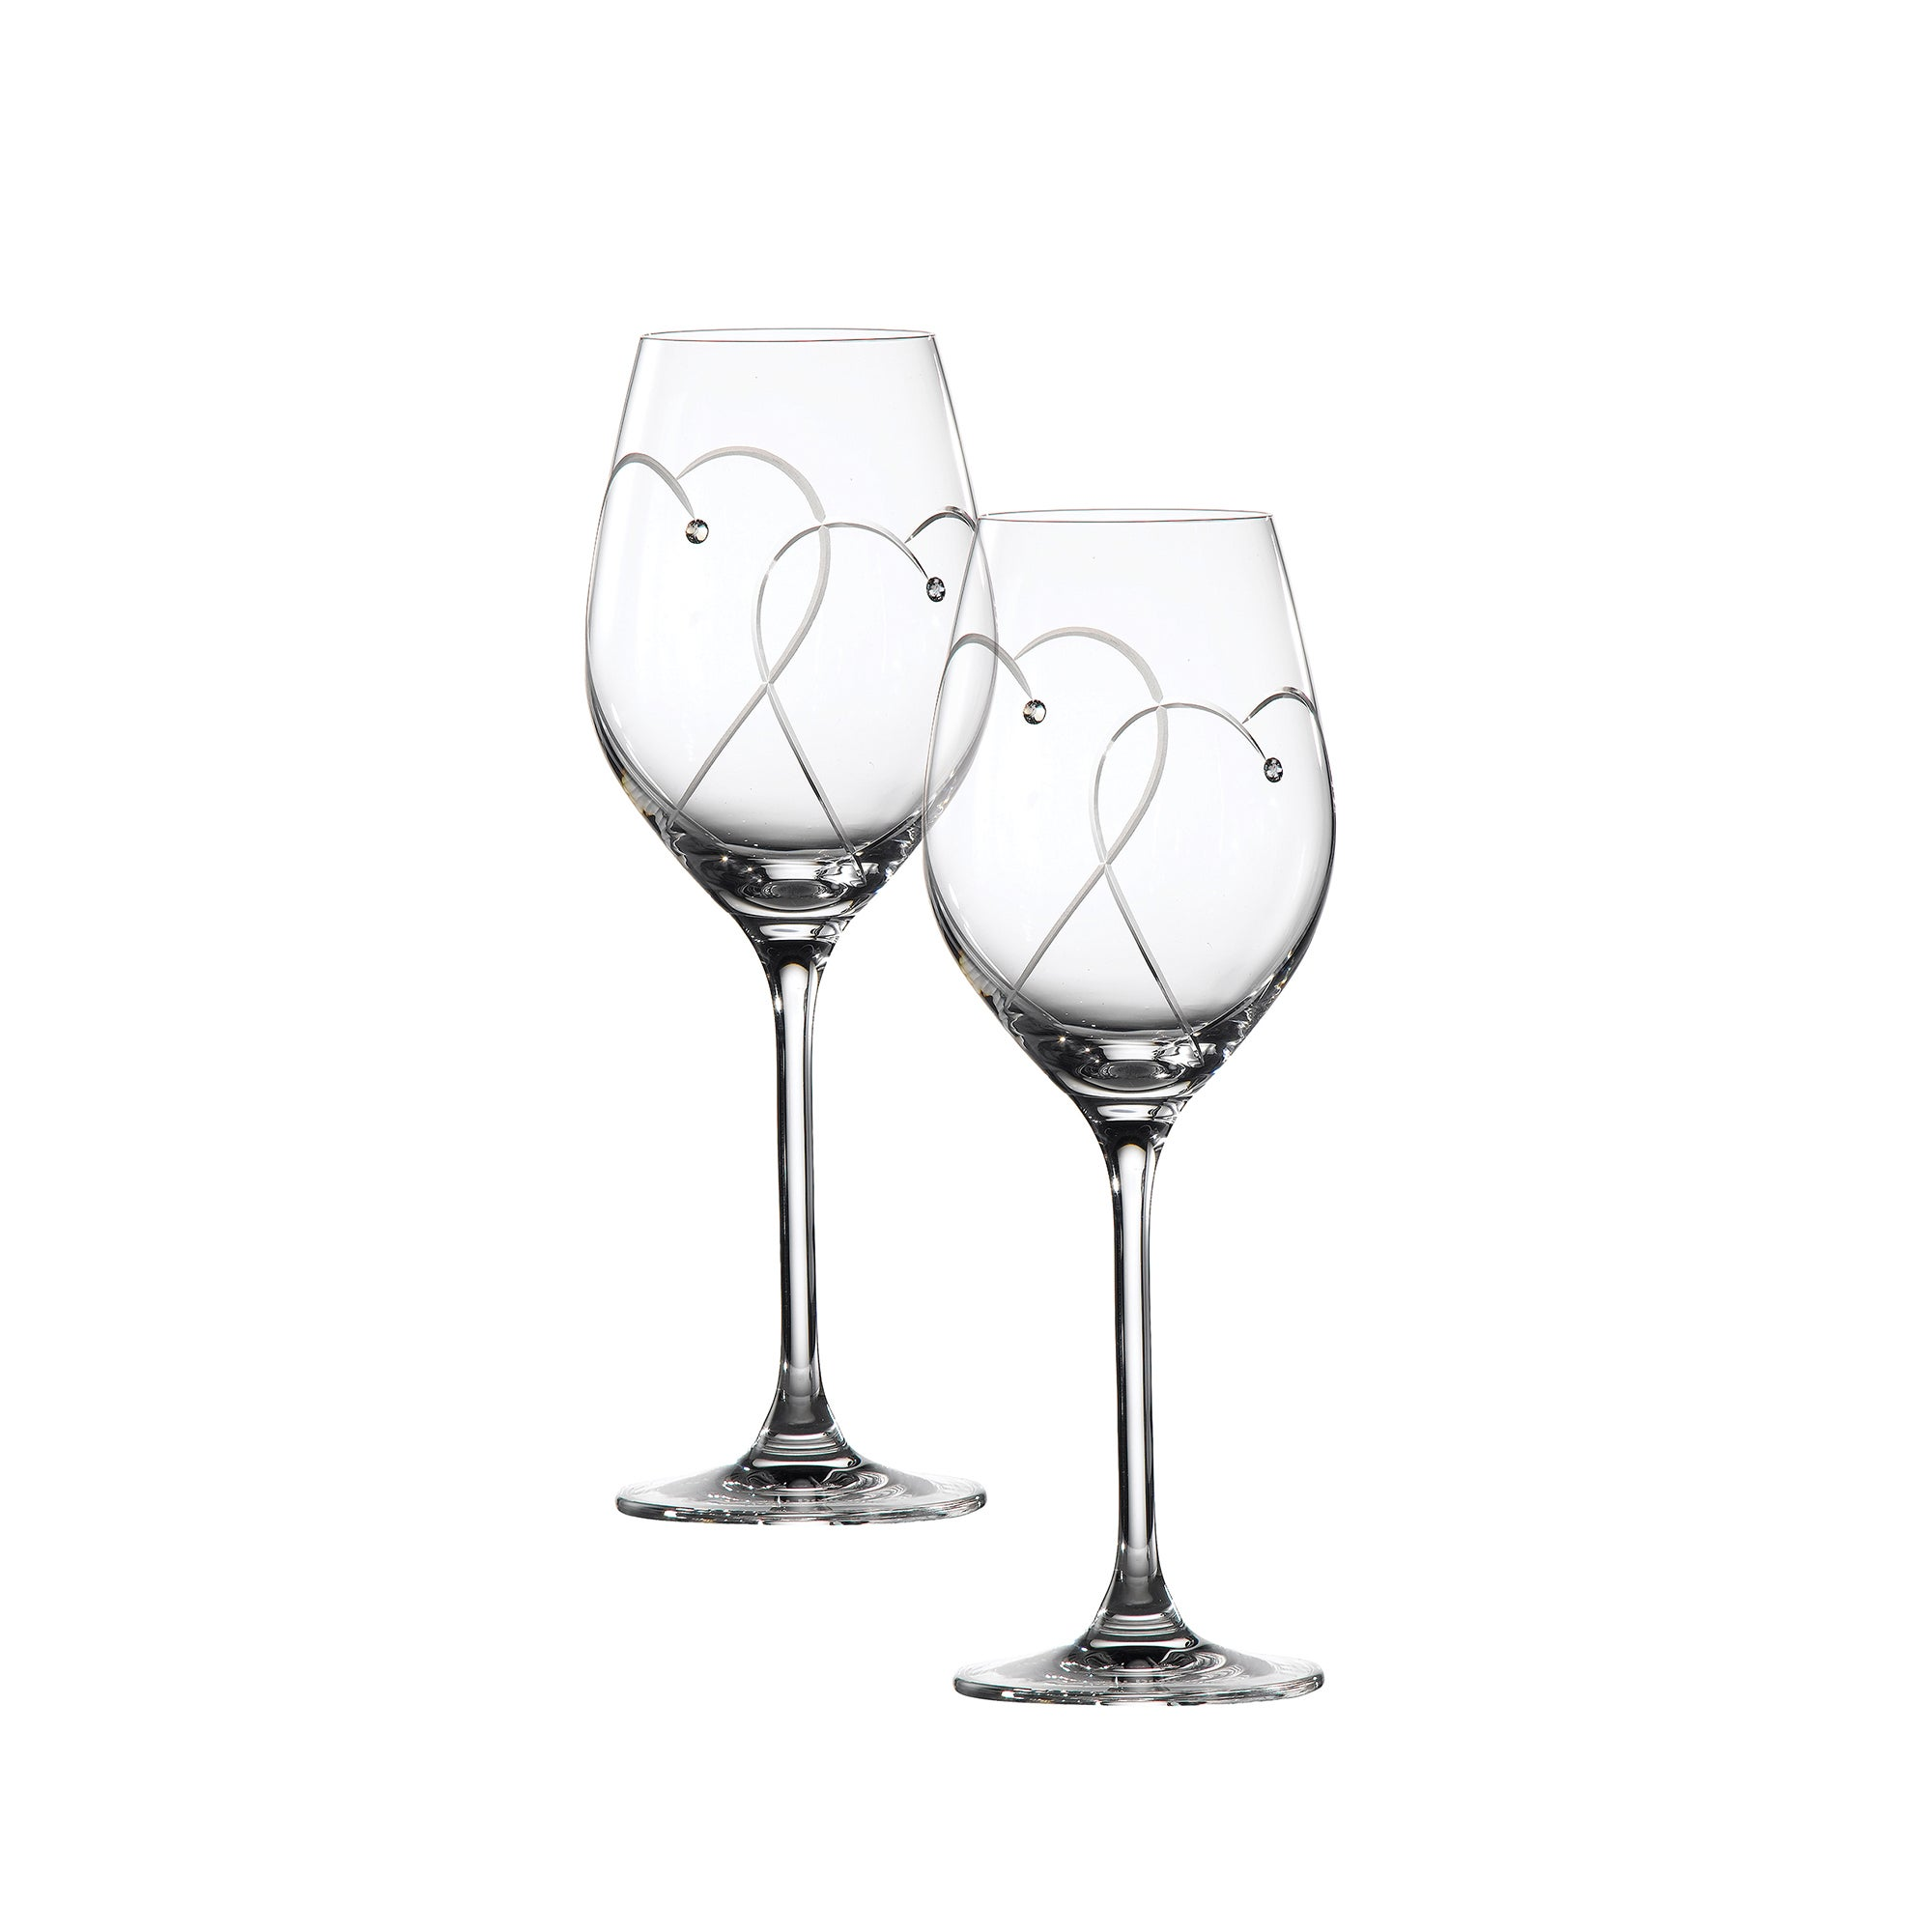 Royal Doulton Promises White Pair of Wine Glasses